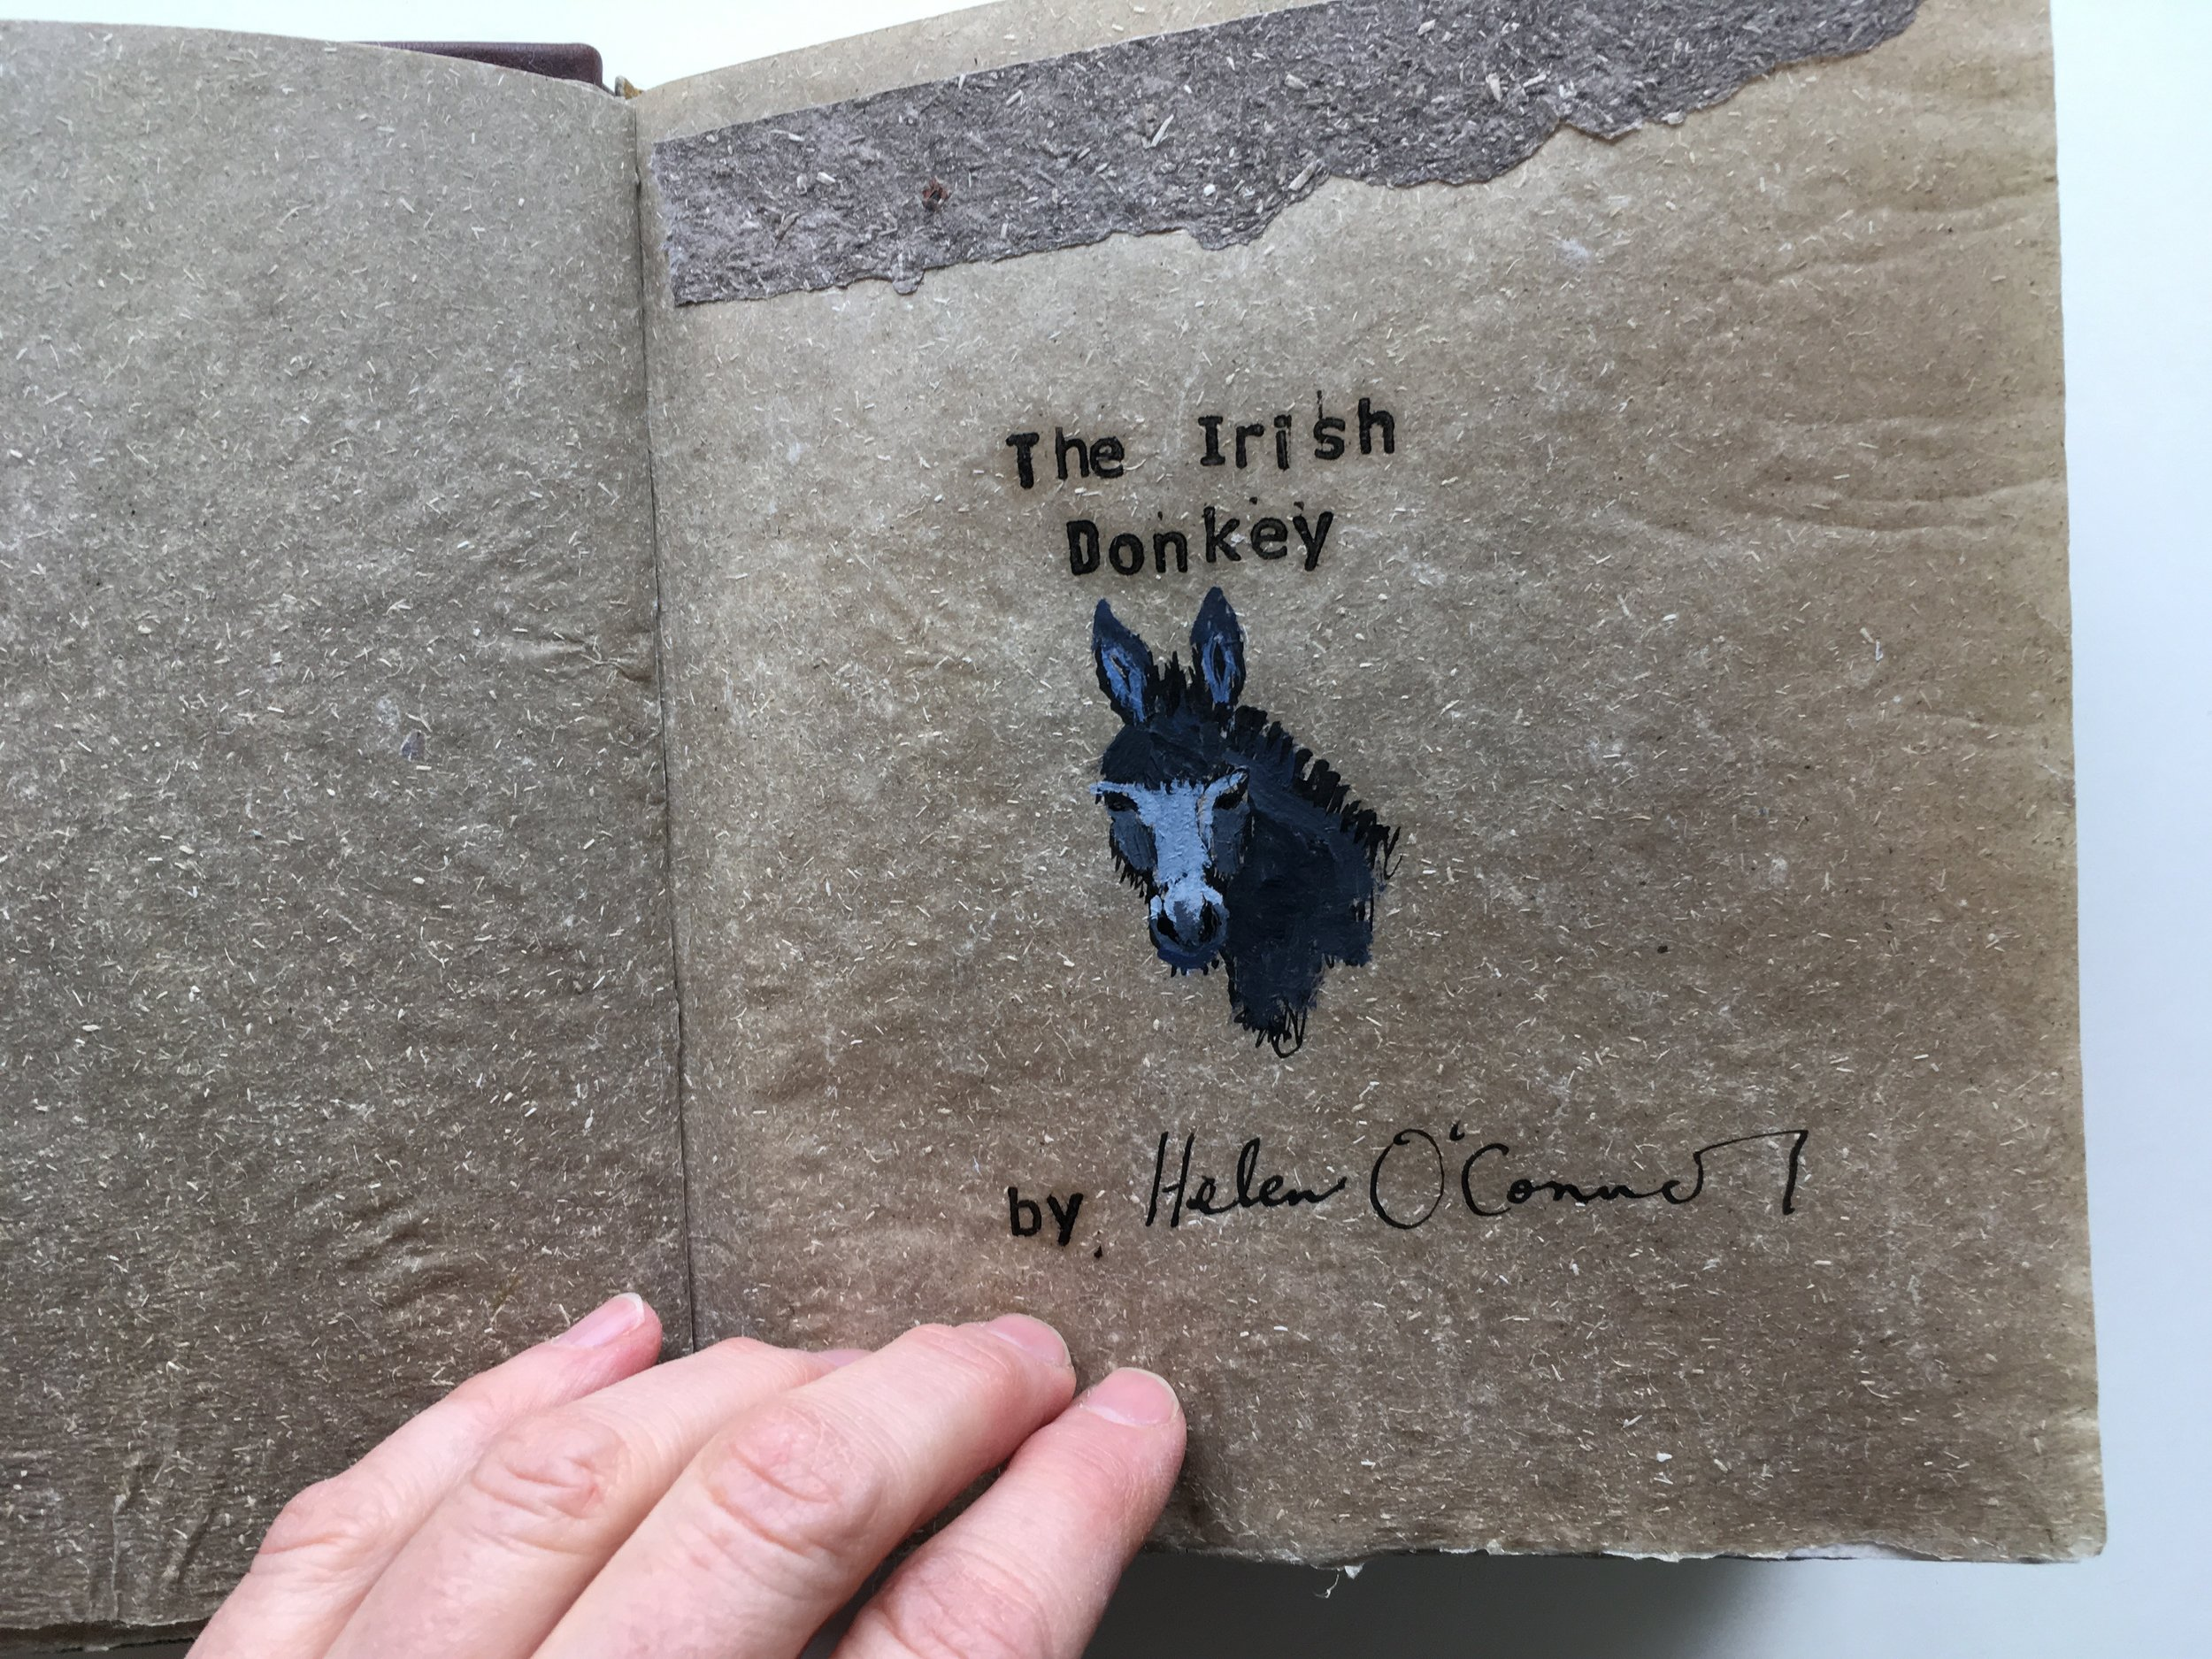 The book is inspired by stories from my parents' childhood in Ireland as well as my experiences there.